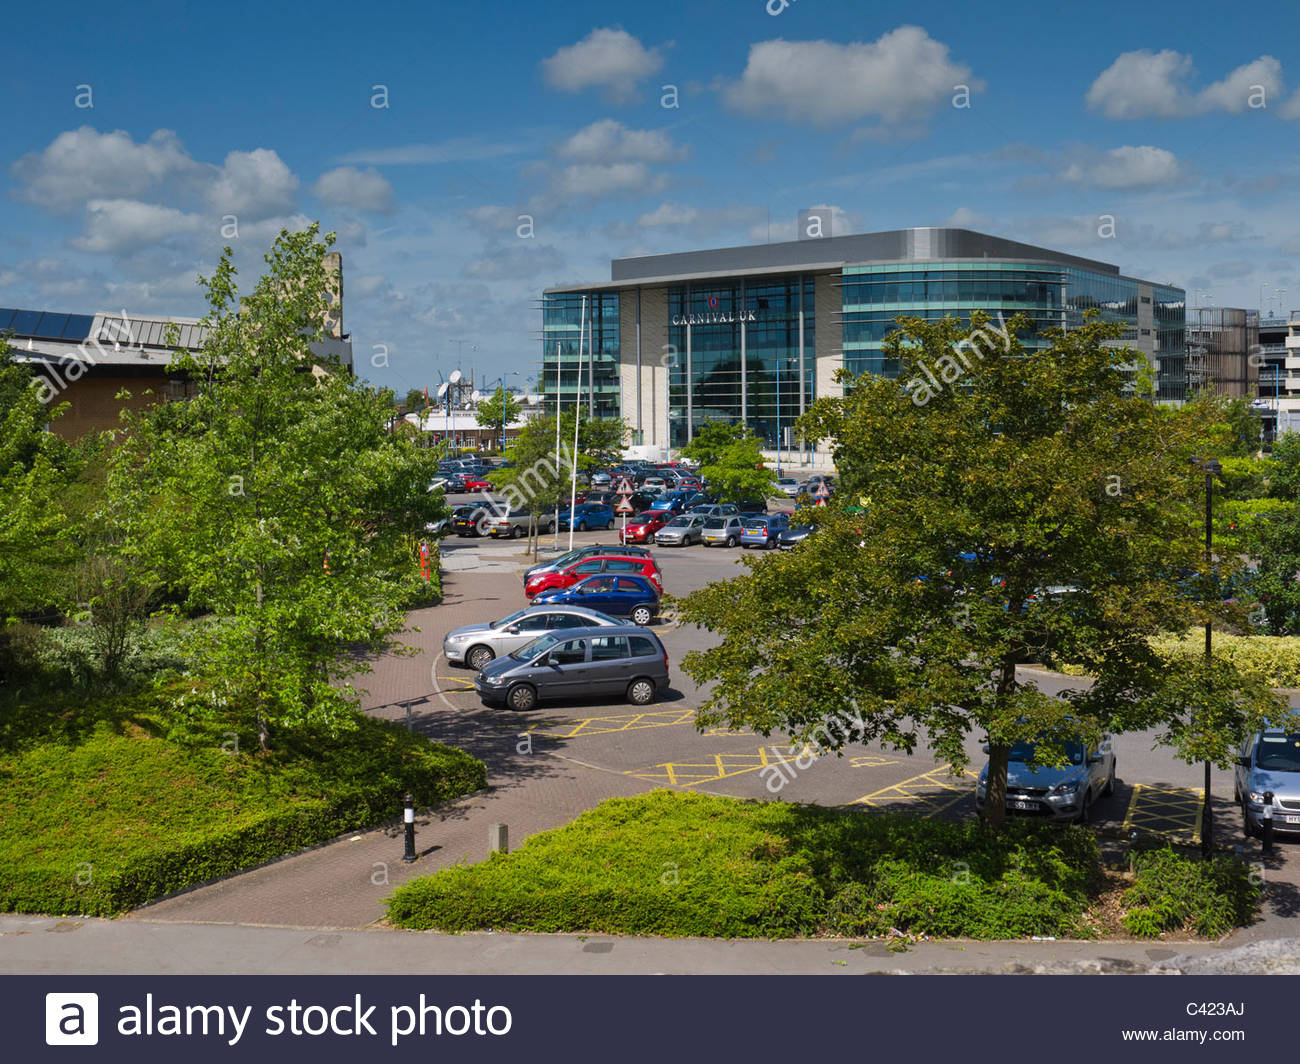 Carnival Cruise Lines Office Southampton England - Stock Image